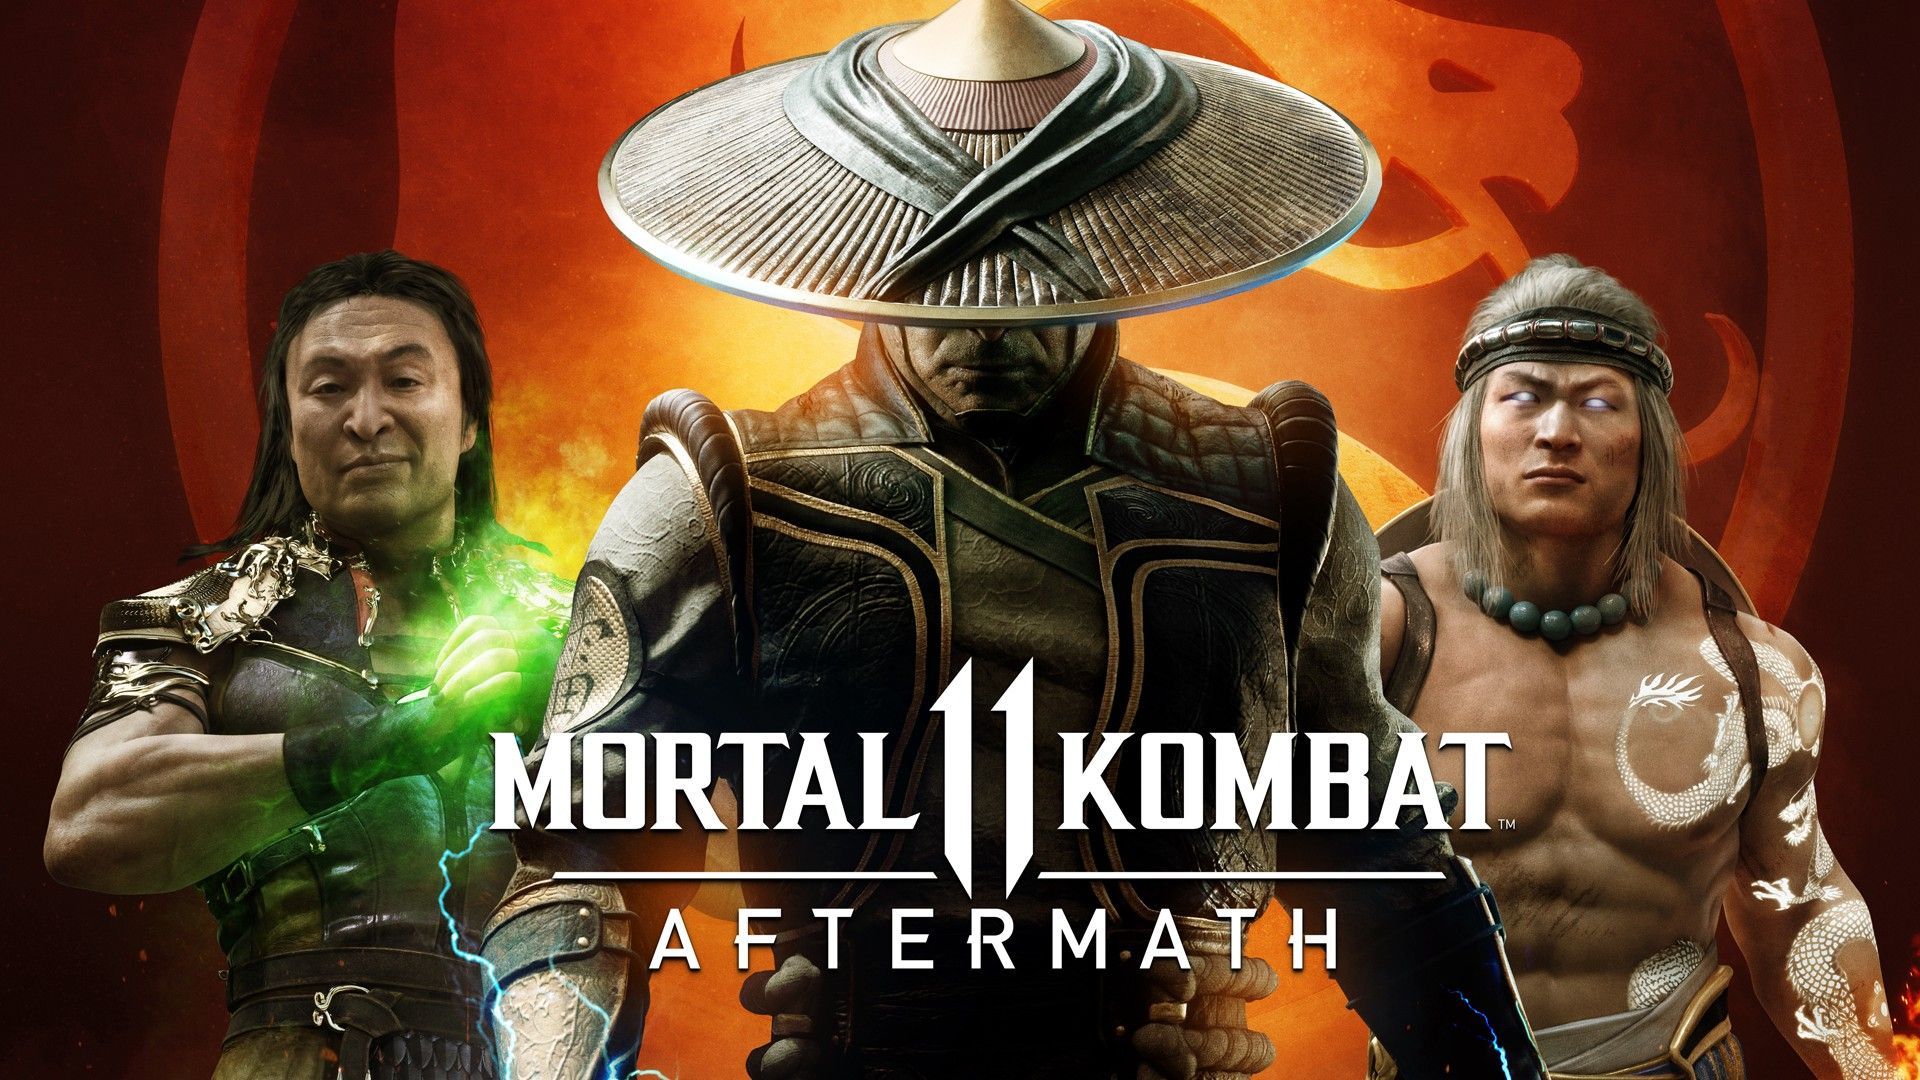 Mortal Kombat 11 Aftermath recenzija – Zao plan